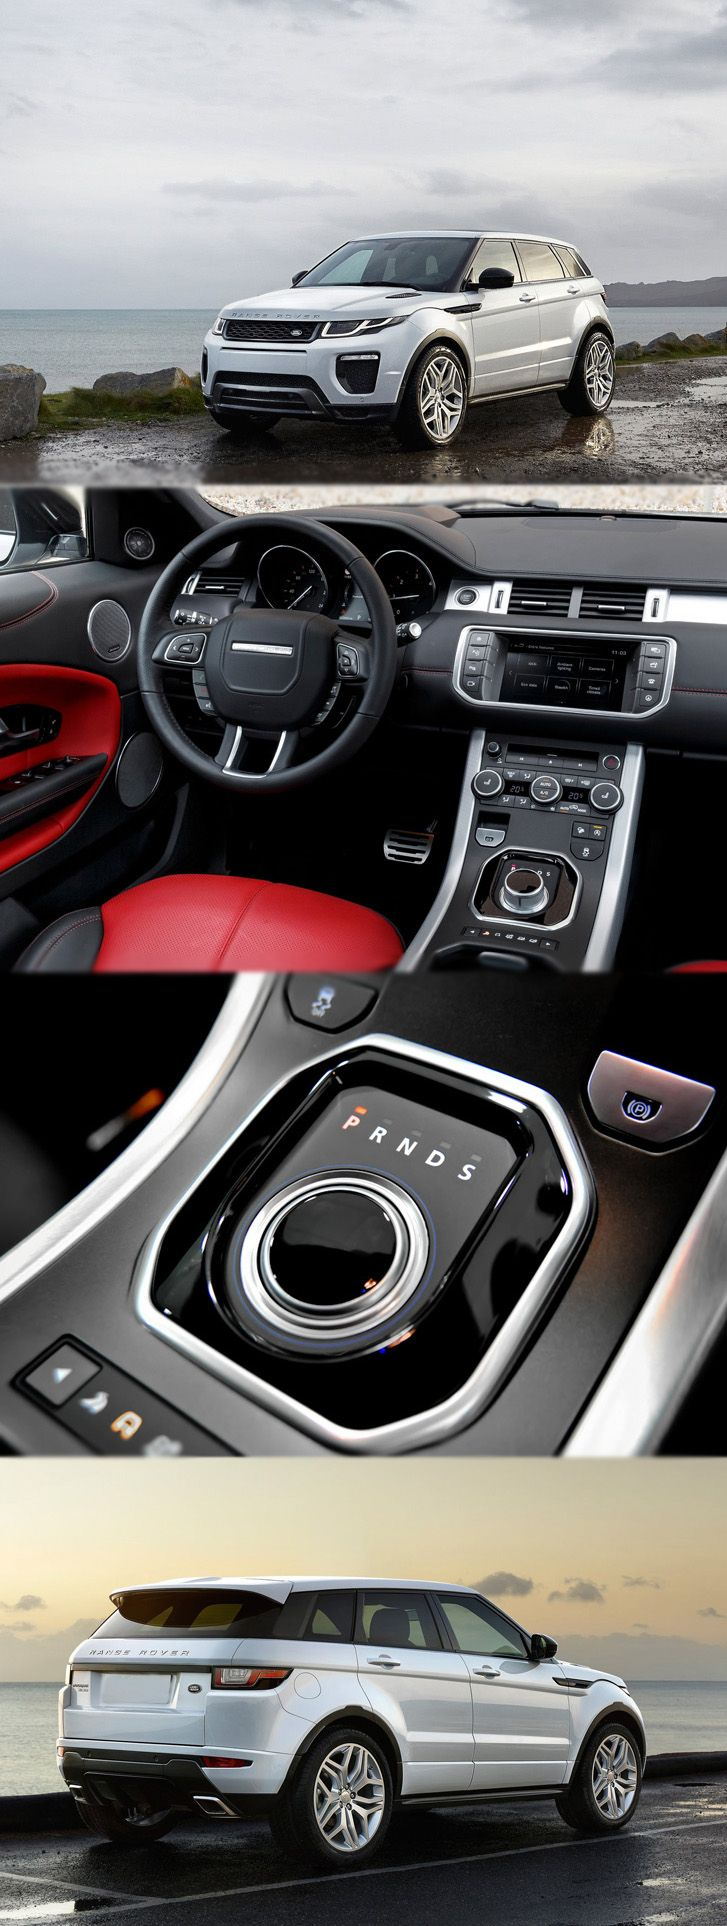 Superb innovation of range rover evoque engine with nine speed gearbox for more detail https